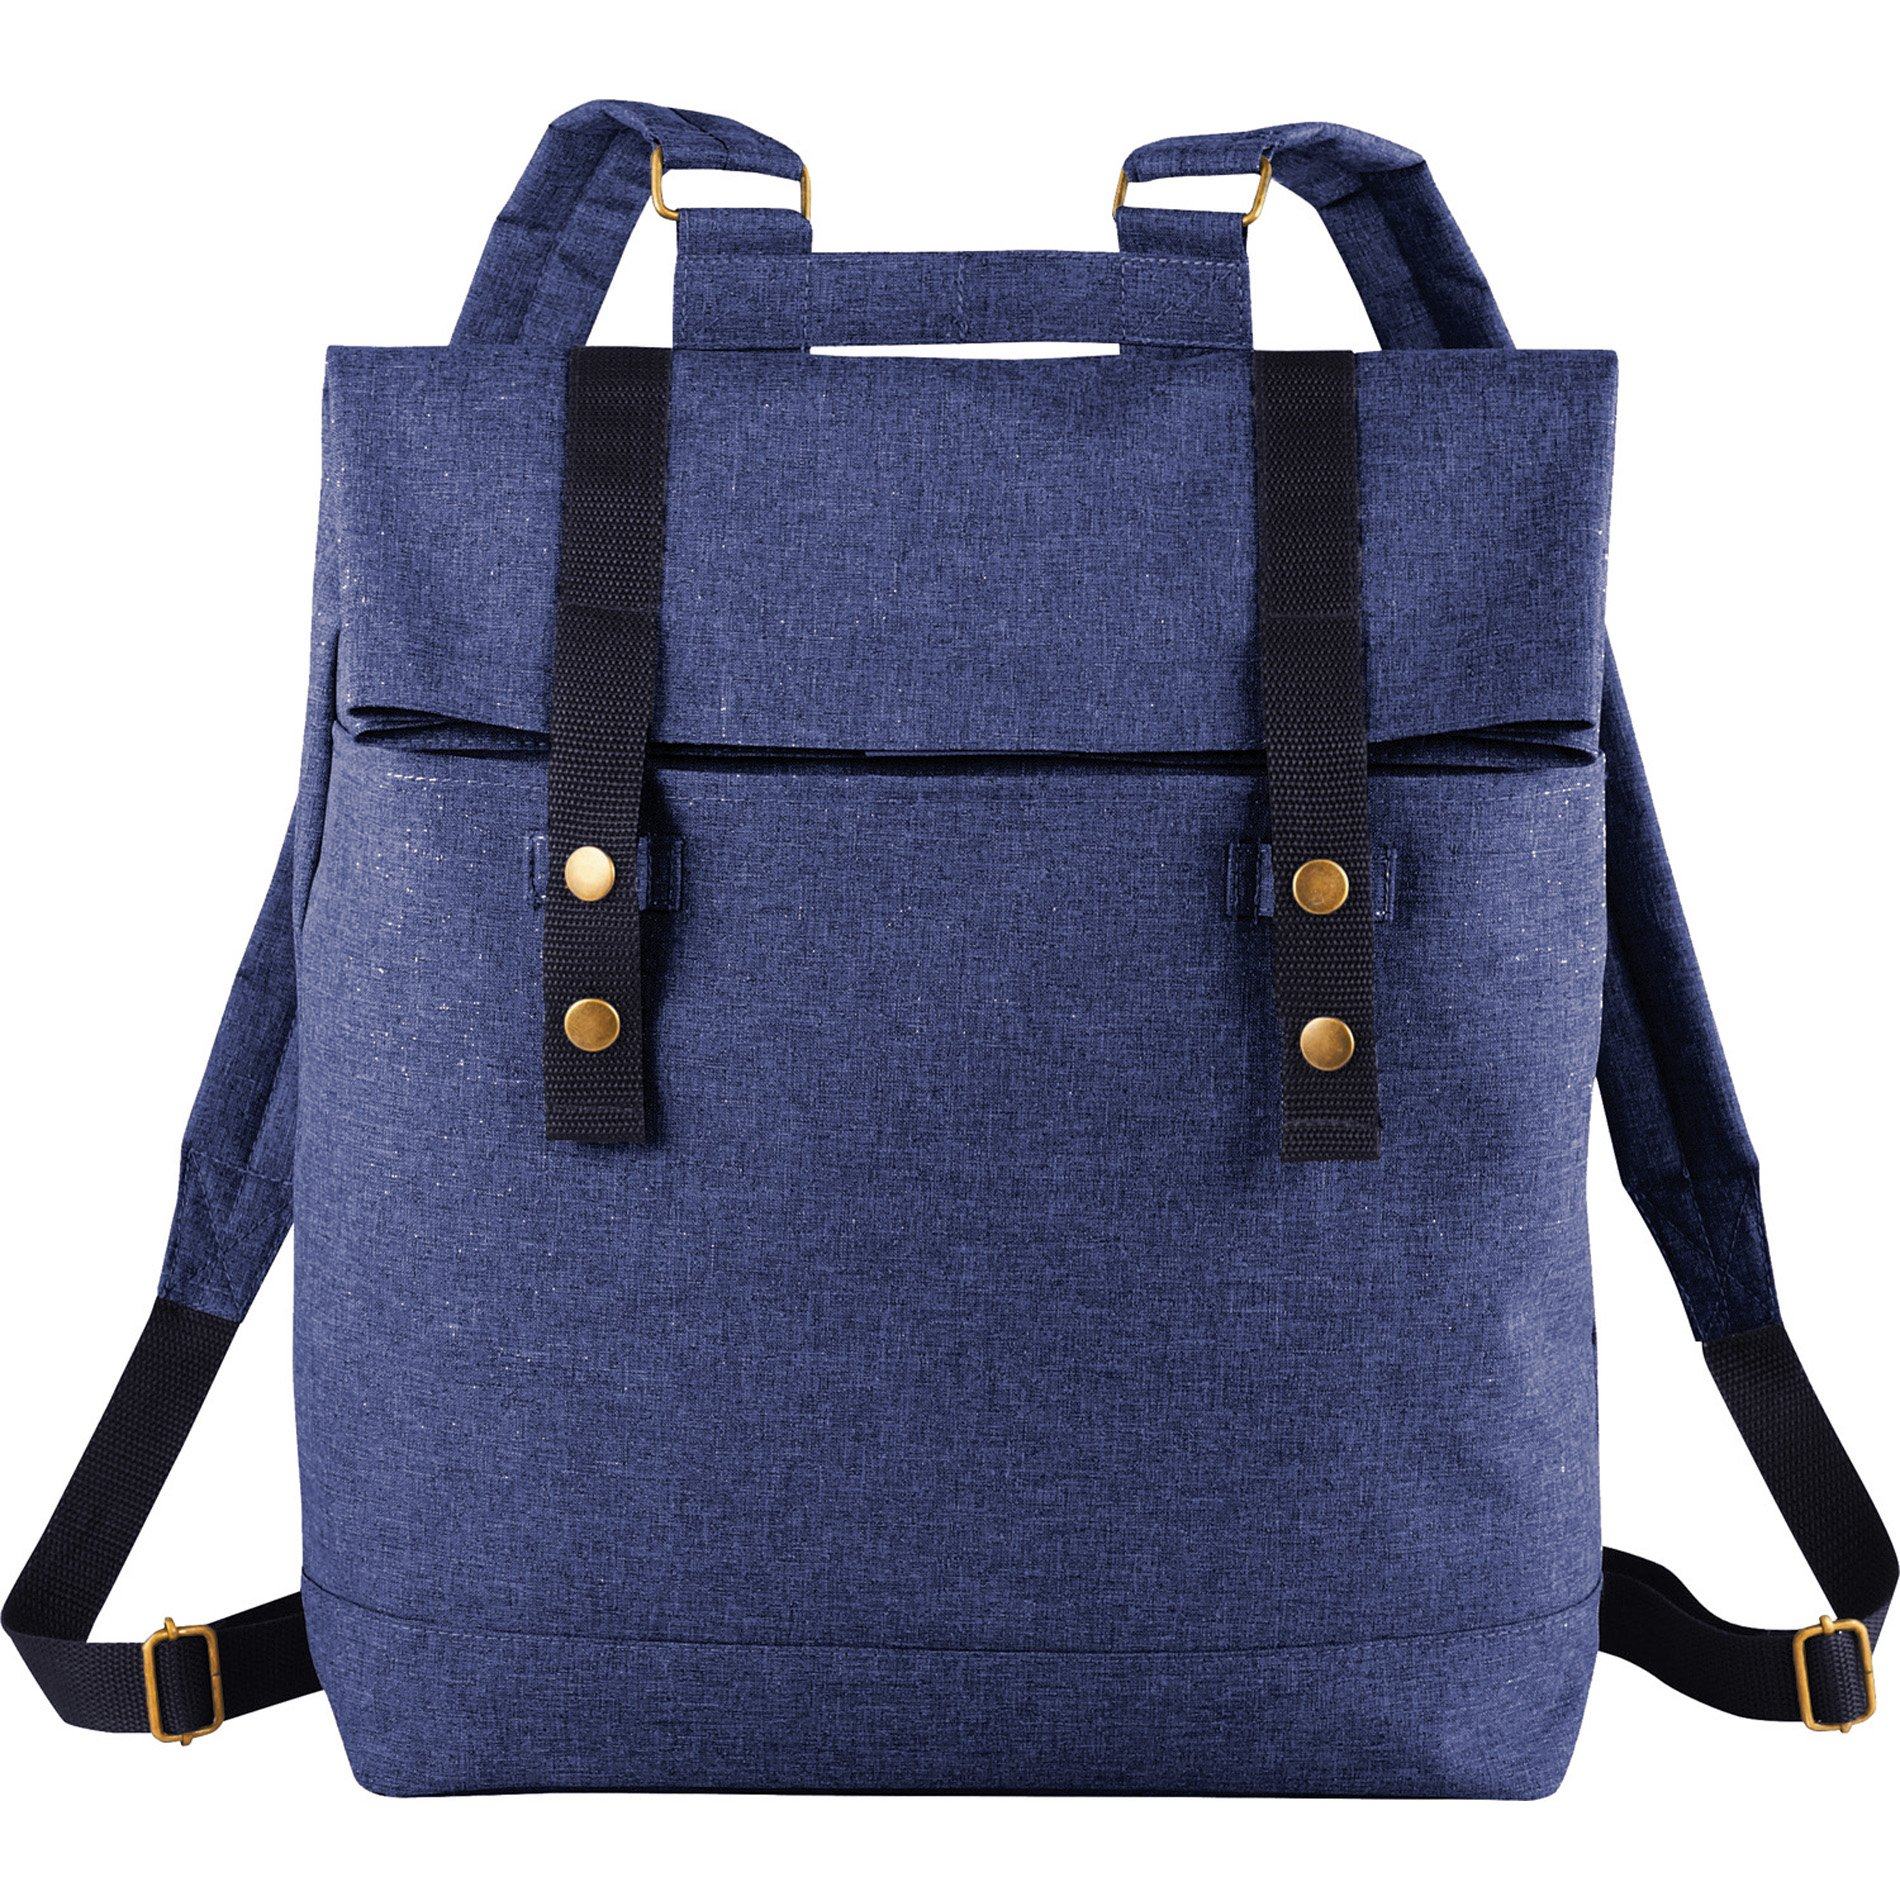 XtitiX Chambray Rucksack Travel Business School Tech Backpack, Blue